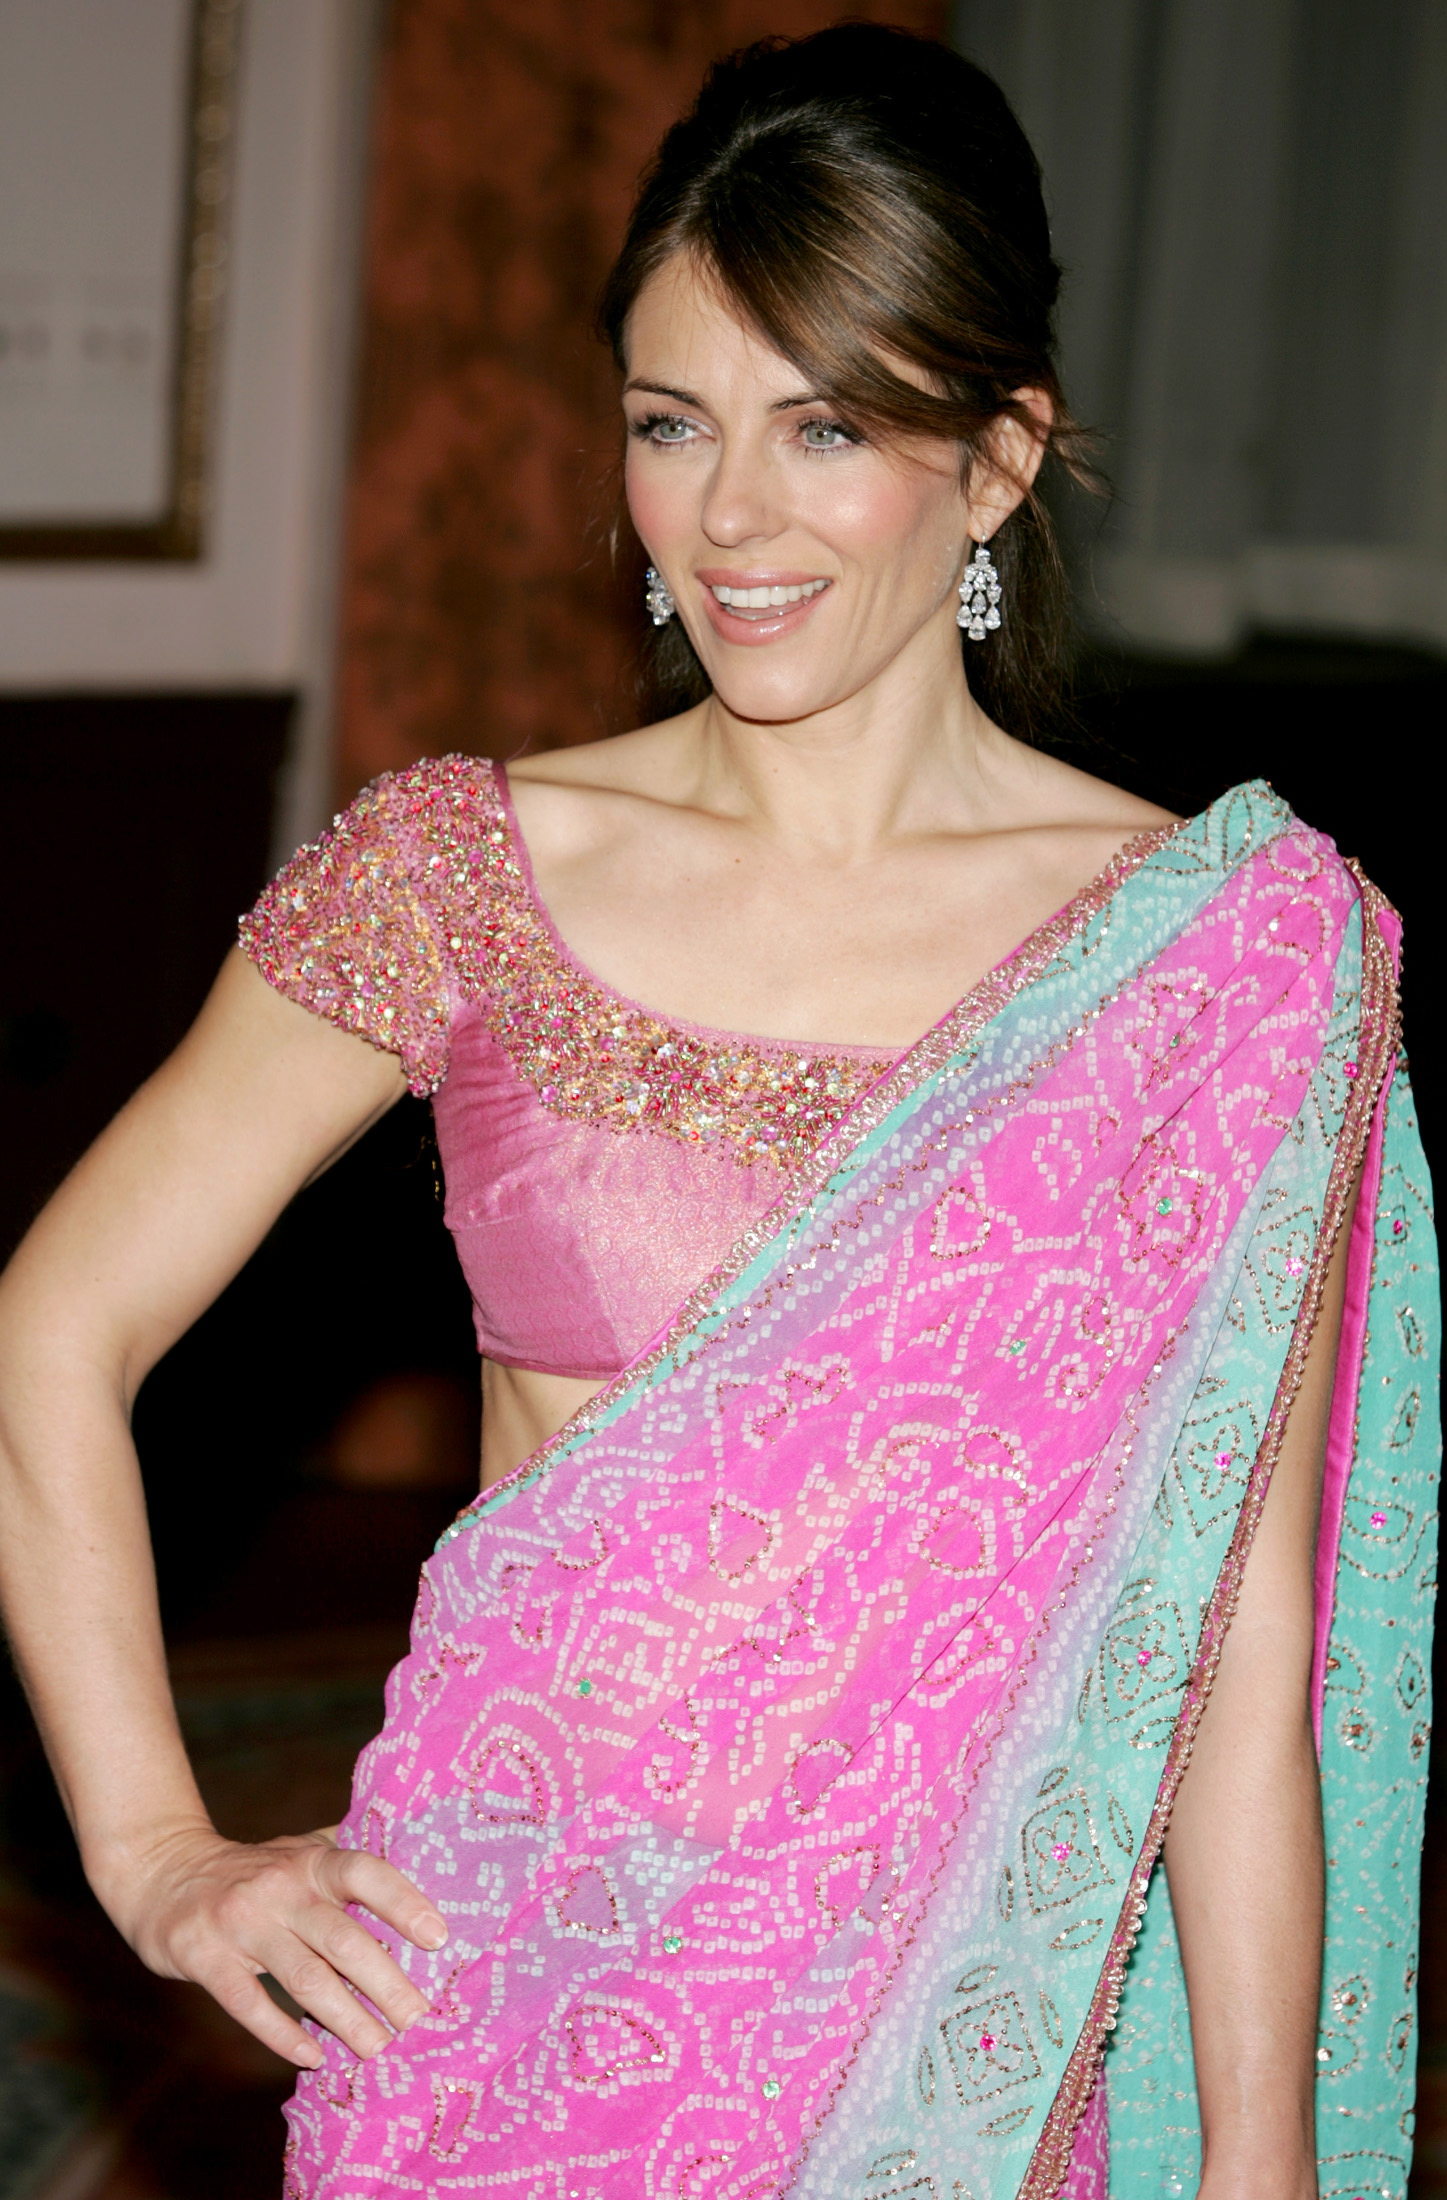 British Actress/model Elizabeth Hurley poses for the photographers as she arrives for The Breast Cancer Research Foundation's Annual Red Hot Pink Ball at The Waldorf-Astoria hotel in New York, April 20, 2005.